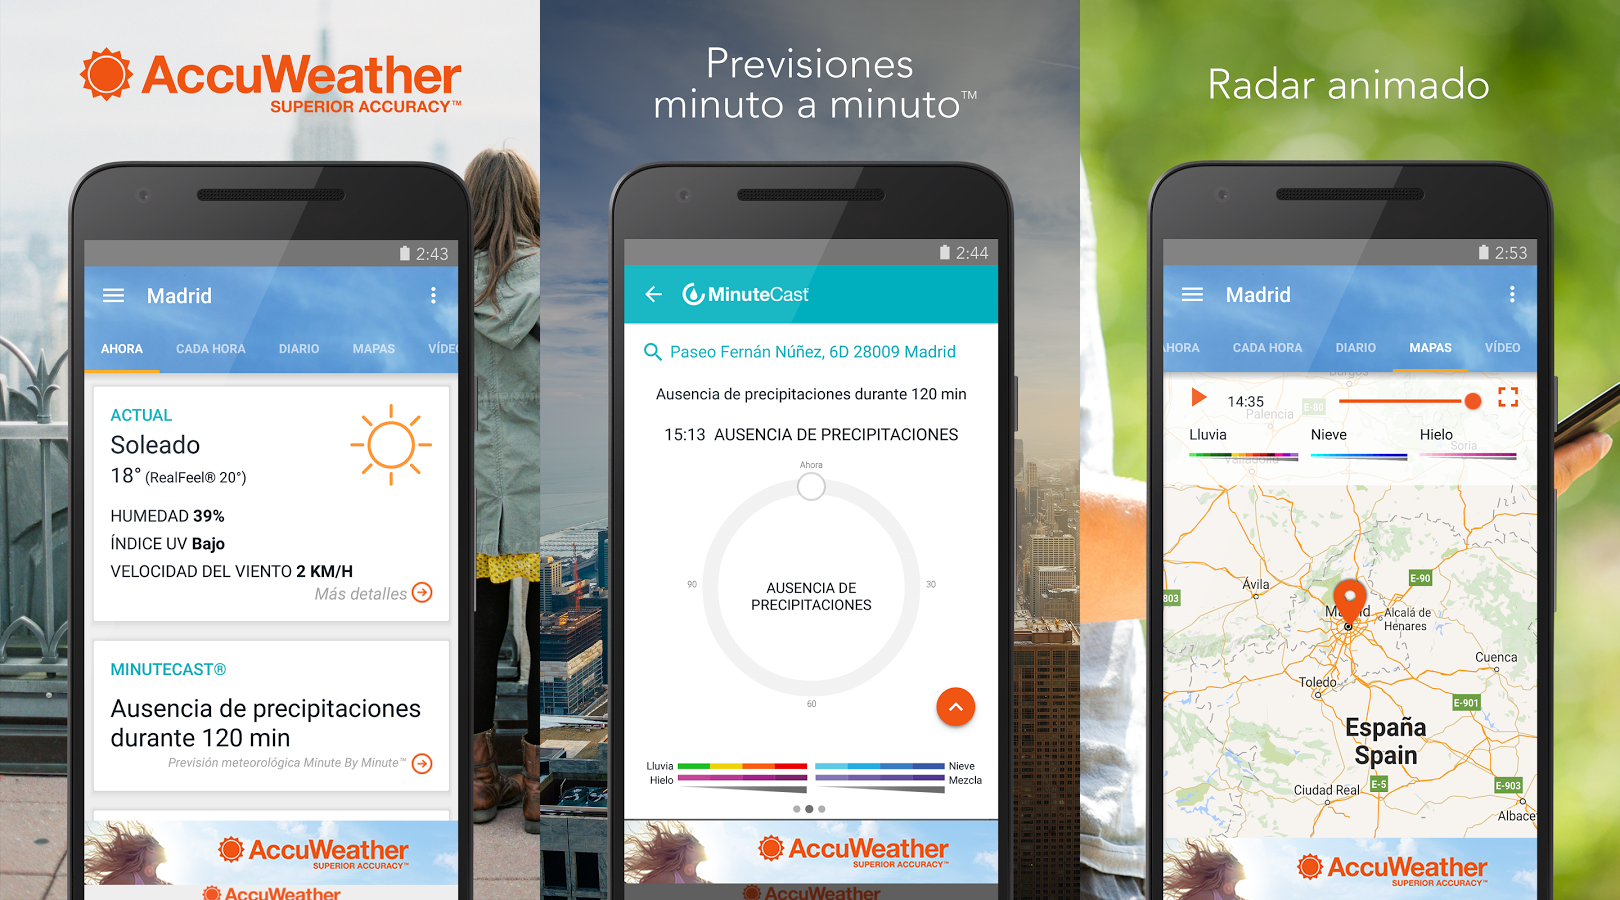 accuweather-nueva-material